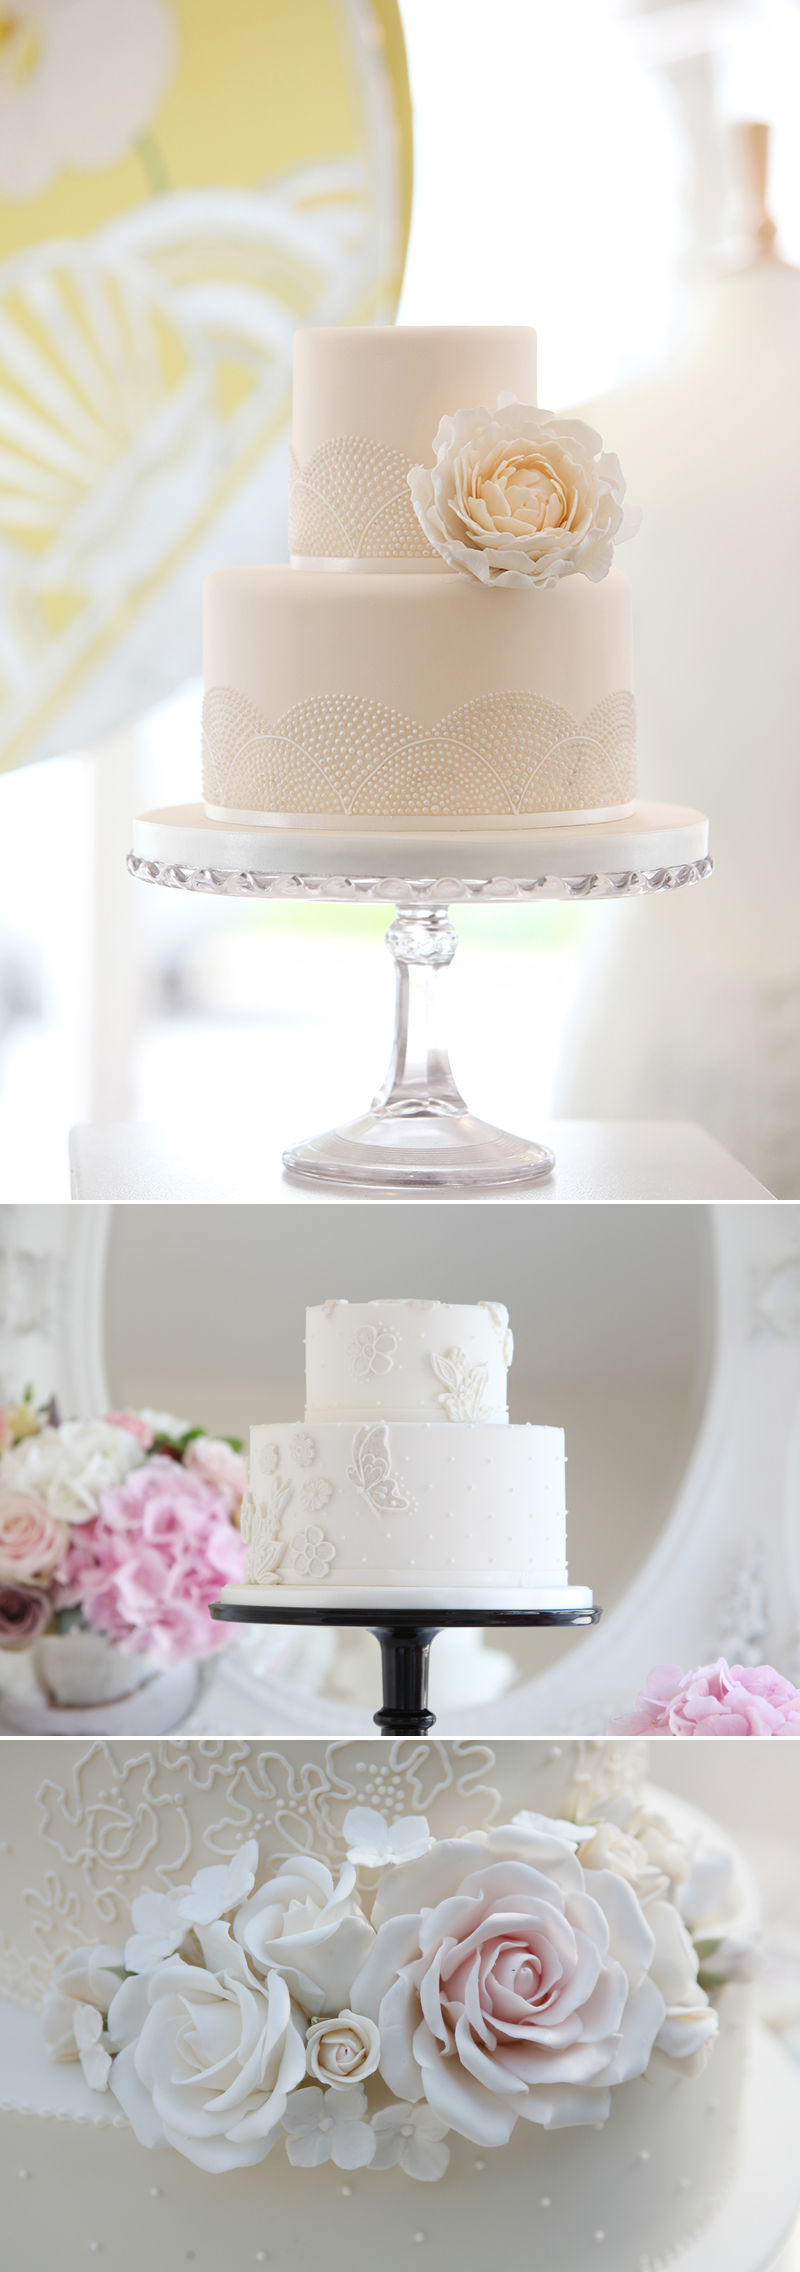 wedding-cake-inspiration-wedding-trends-2015-cake-maison-coco-wedding-venues-1